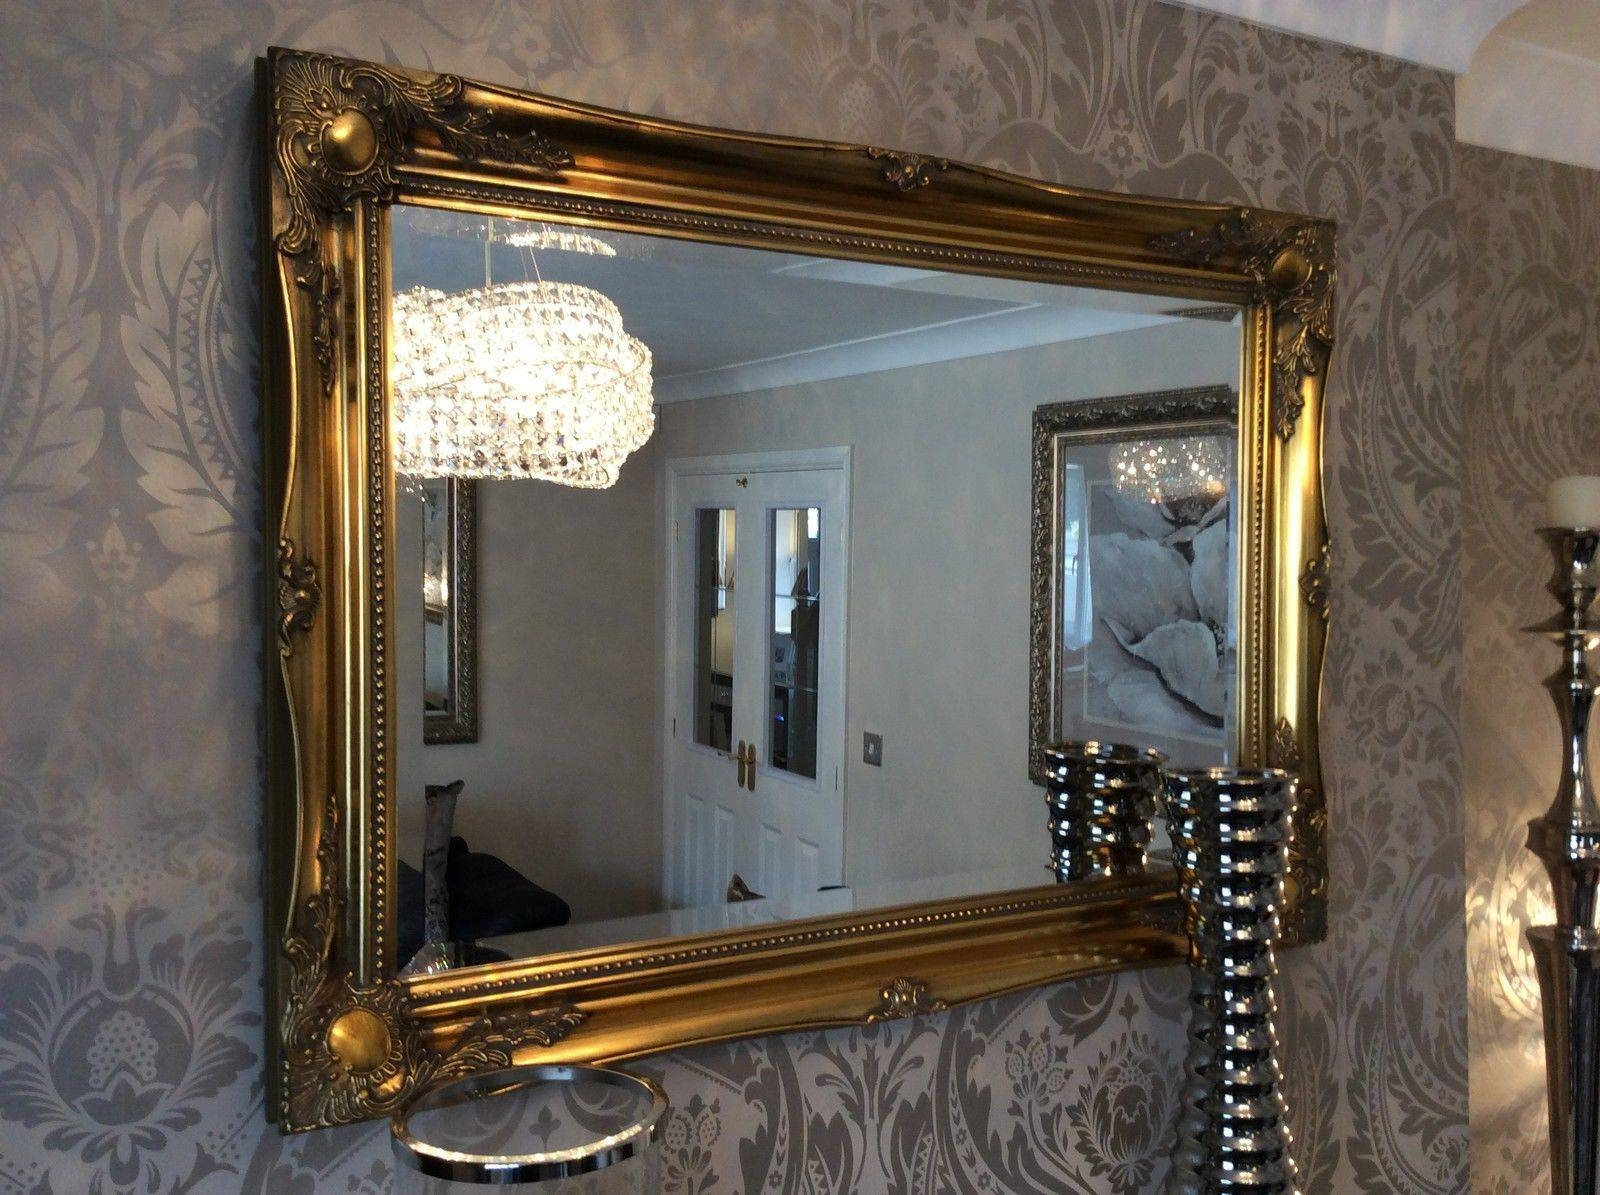 Large Mirrored Picture Frames Uk - Best Frames 2017 for Large Bevelled Mirrors (Image 18 of 25)